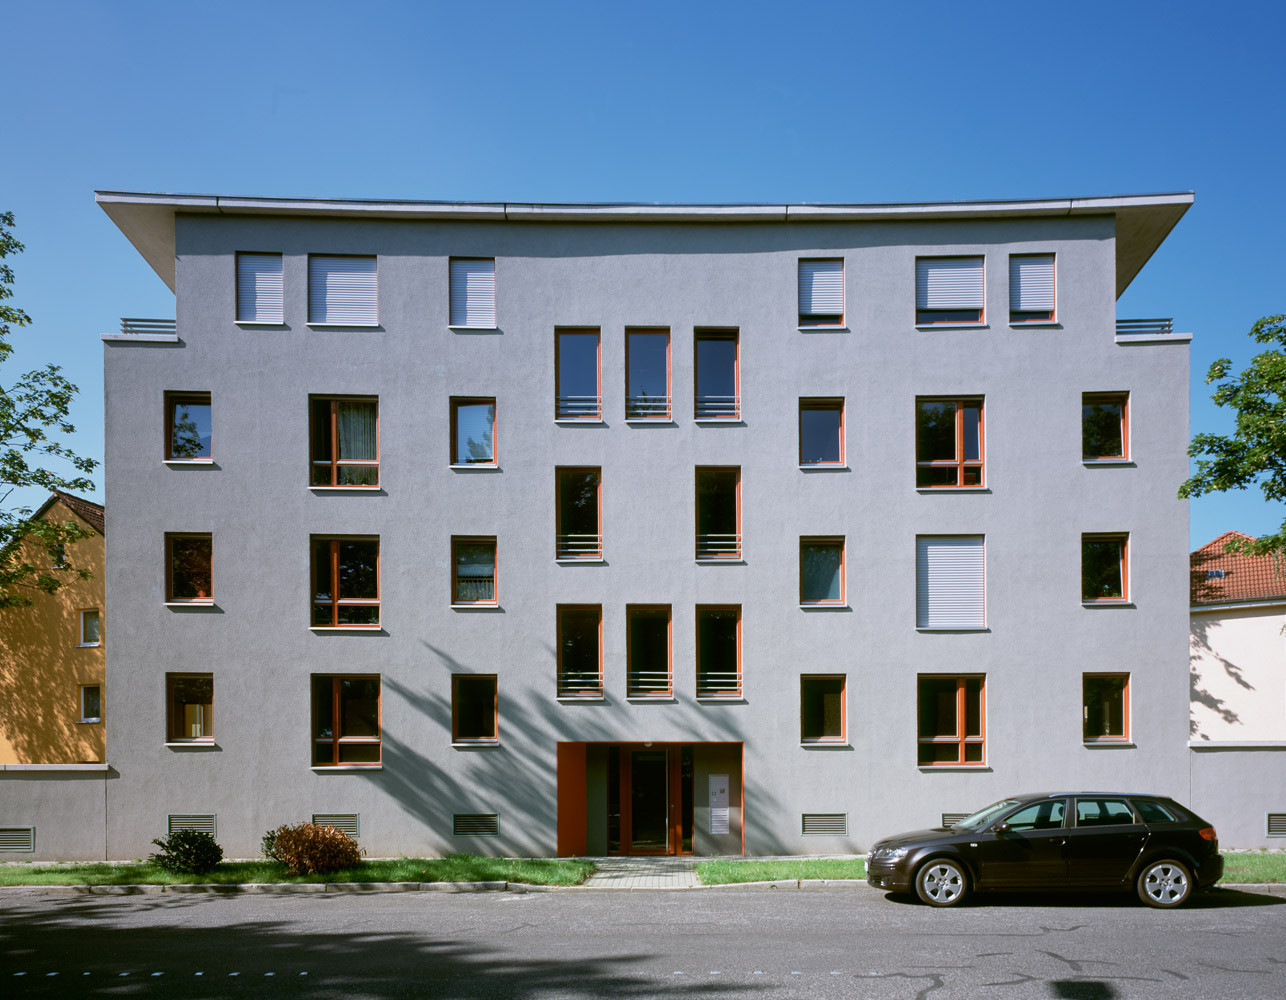 6 Residential Houses / RÜBSAMEN+PARTNER, Courtesy of RÜBSAMEN+PARTNER